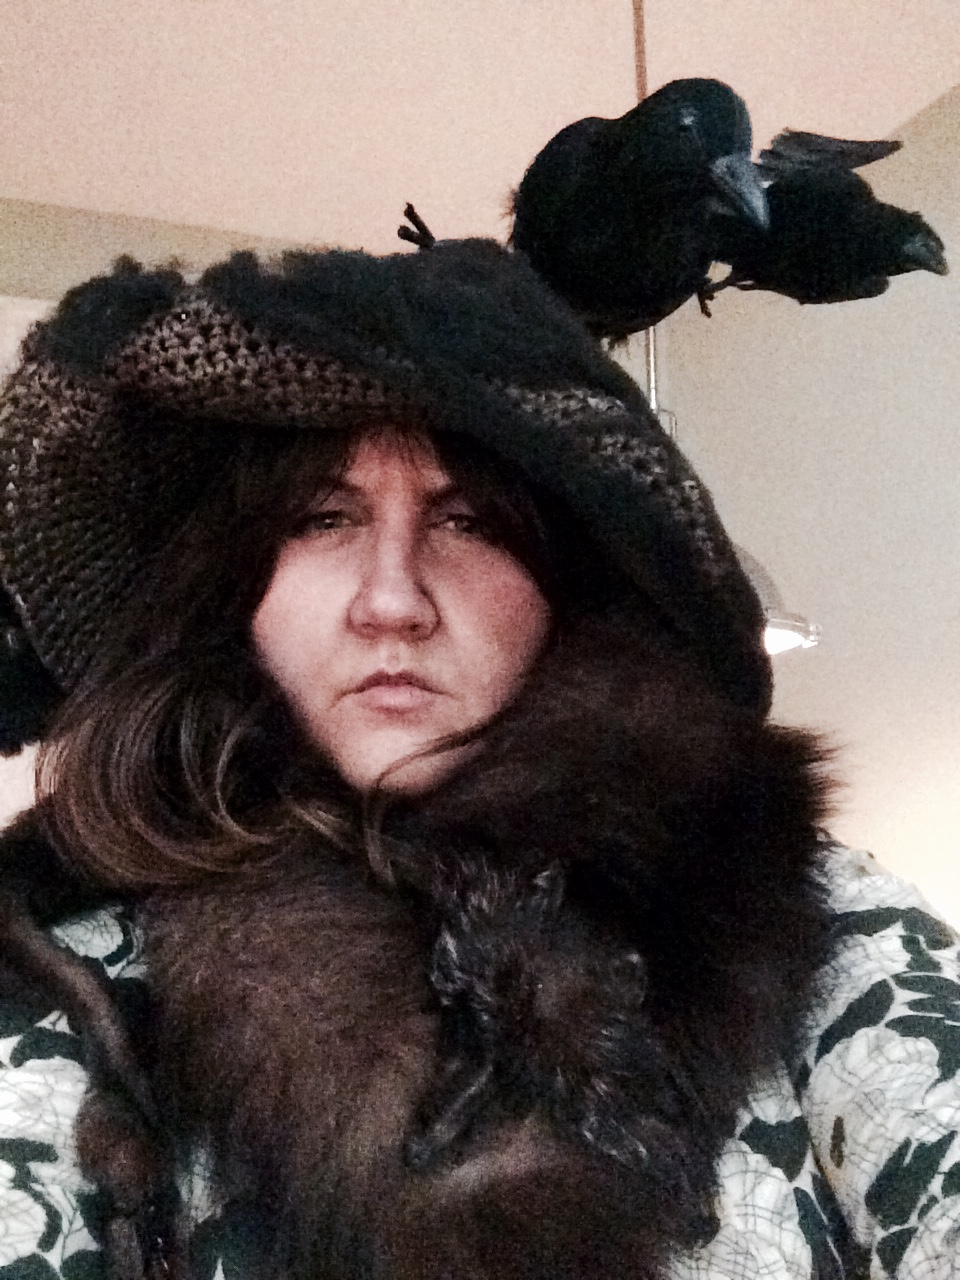 Me dressed as Snape dressed as Neville Longbottom's grandmother.